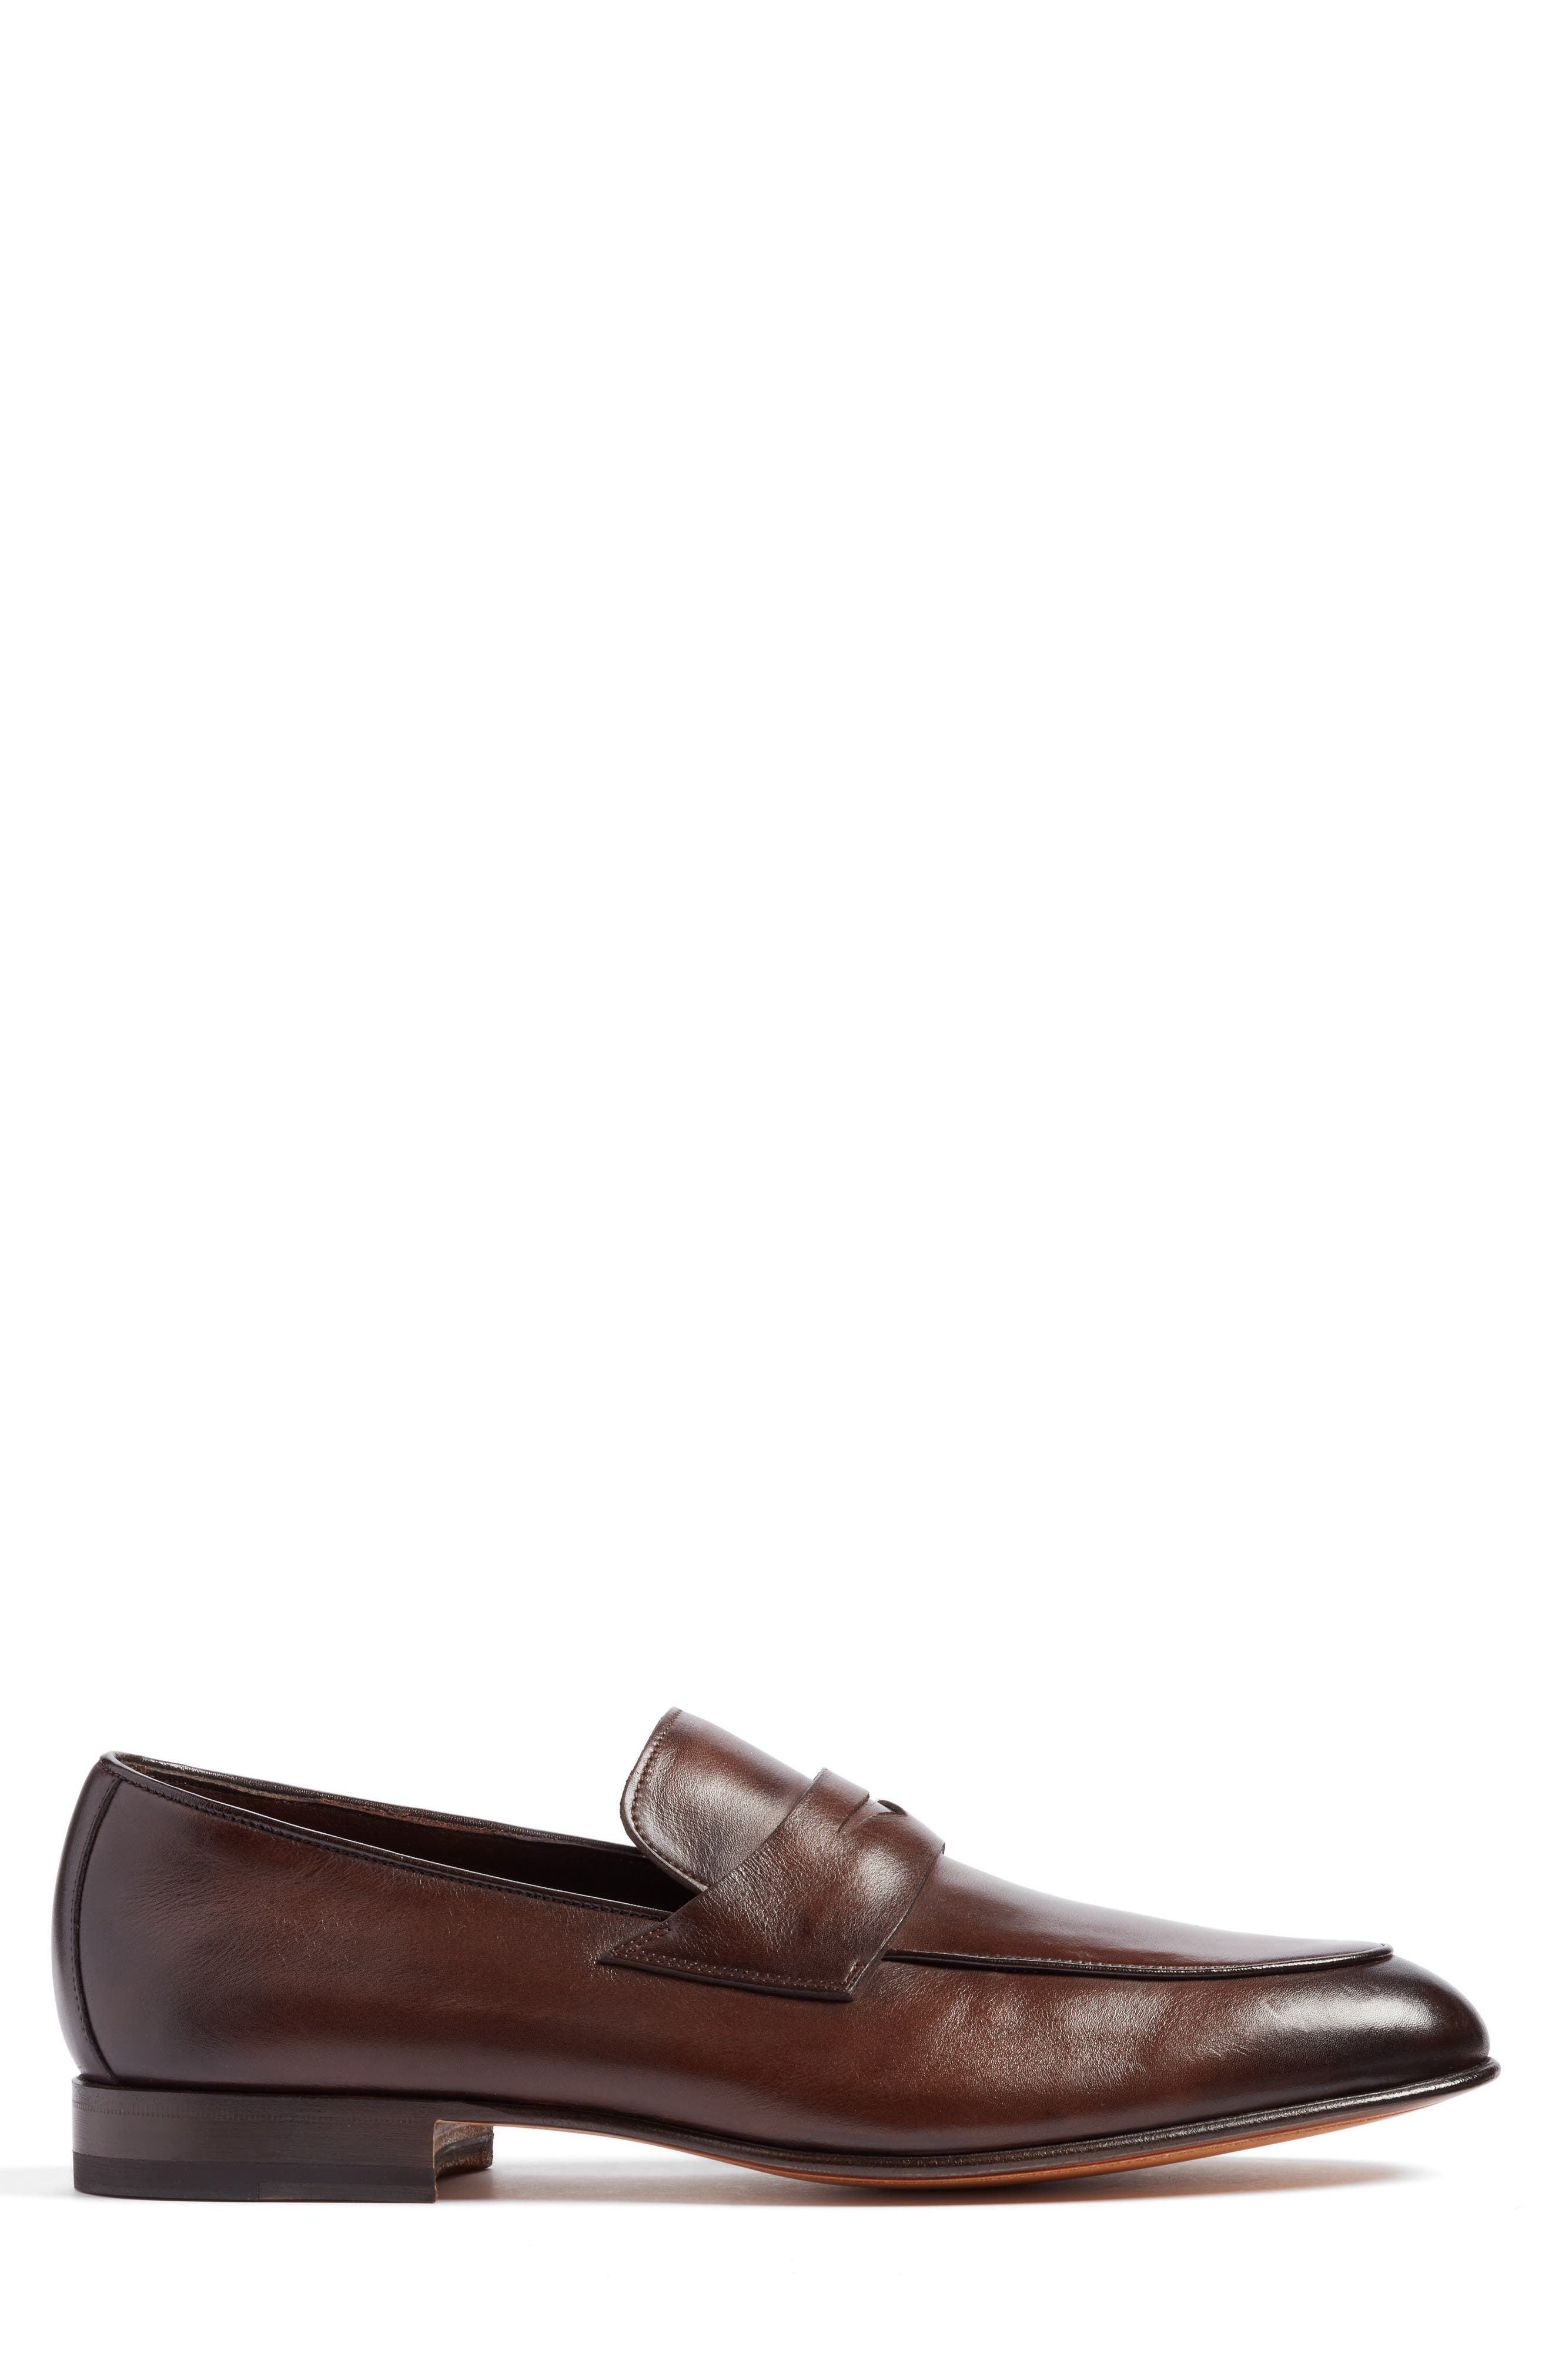 Fontaine Penny Loafer,                             Alternate thumbnail 3, color,                             209